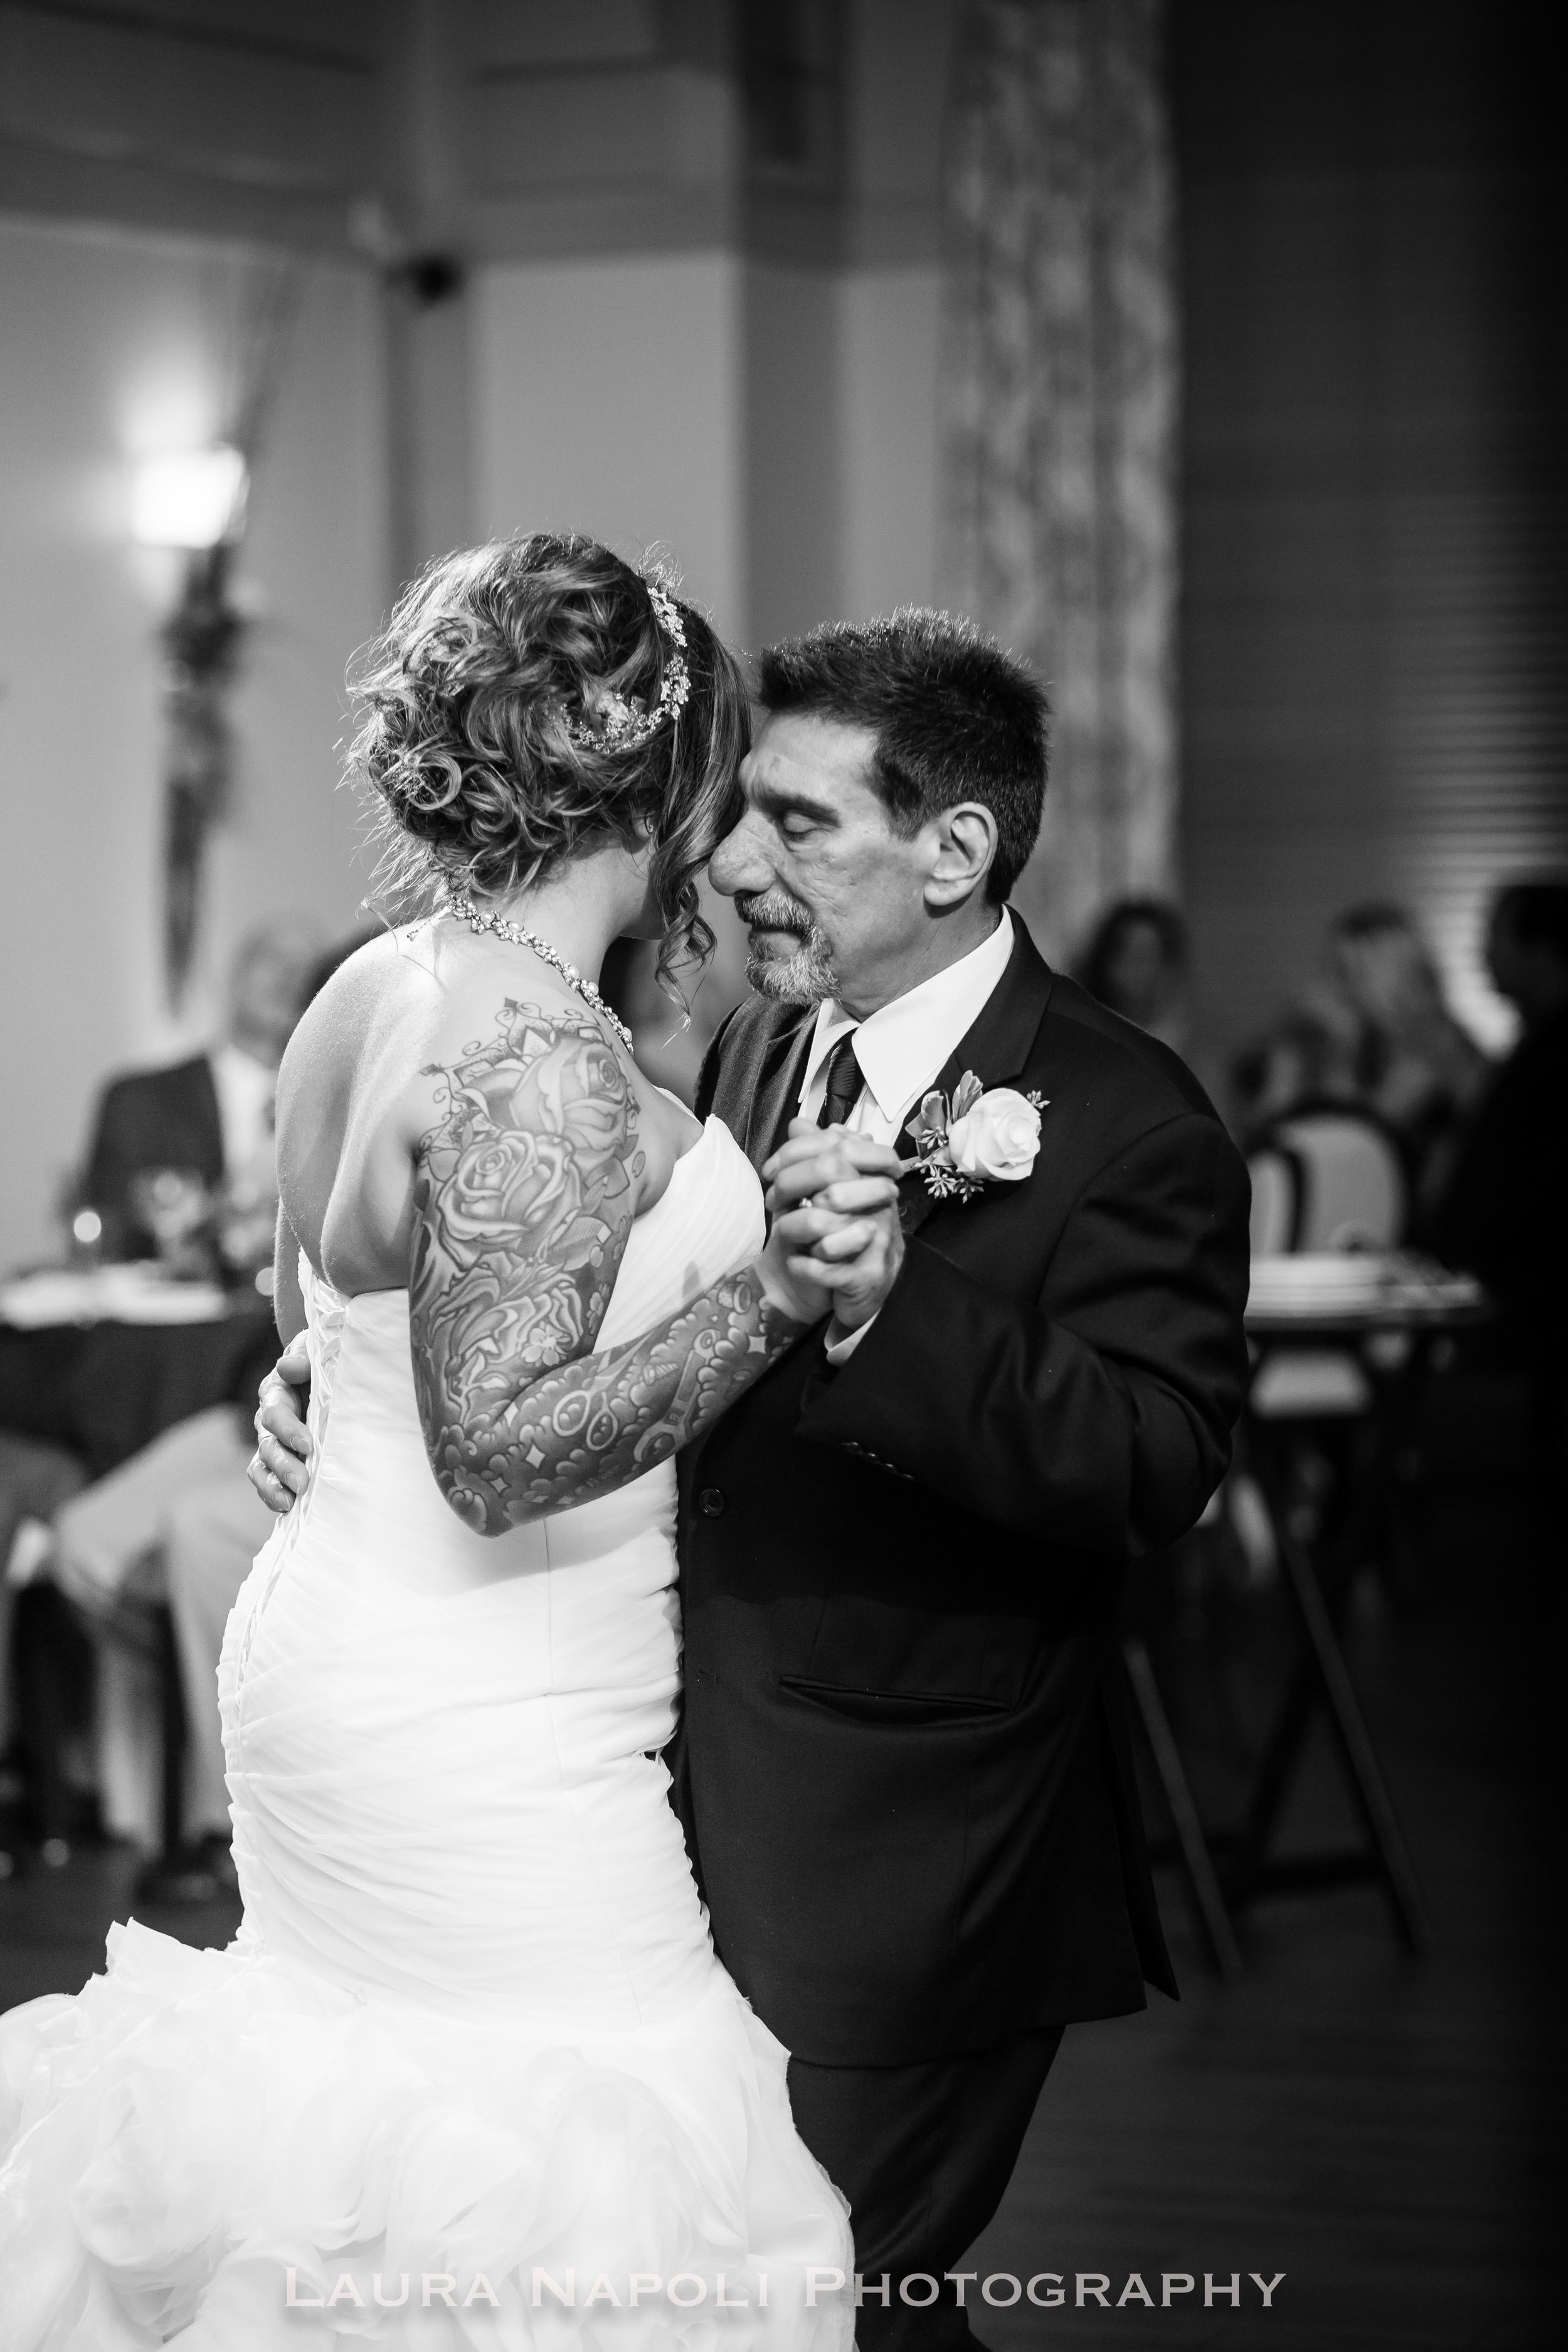 CafeMadisonWeddingRiversideNJweddingvenuesouthjerseyweddingphotographer-24.jpg